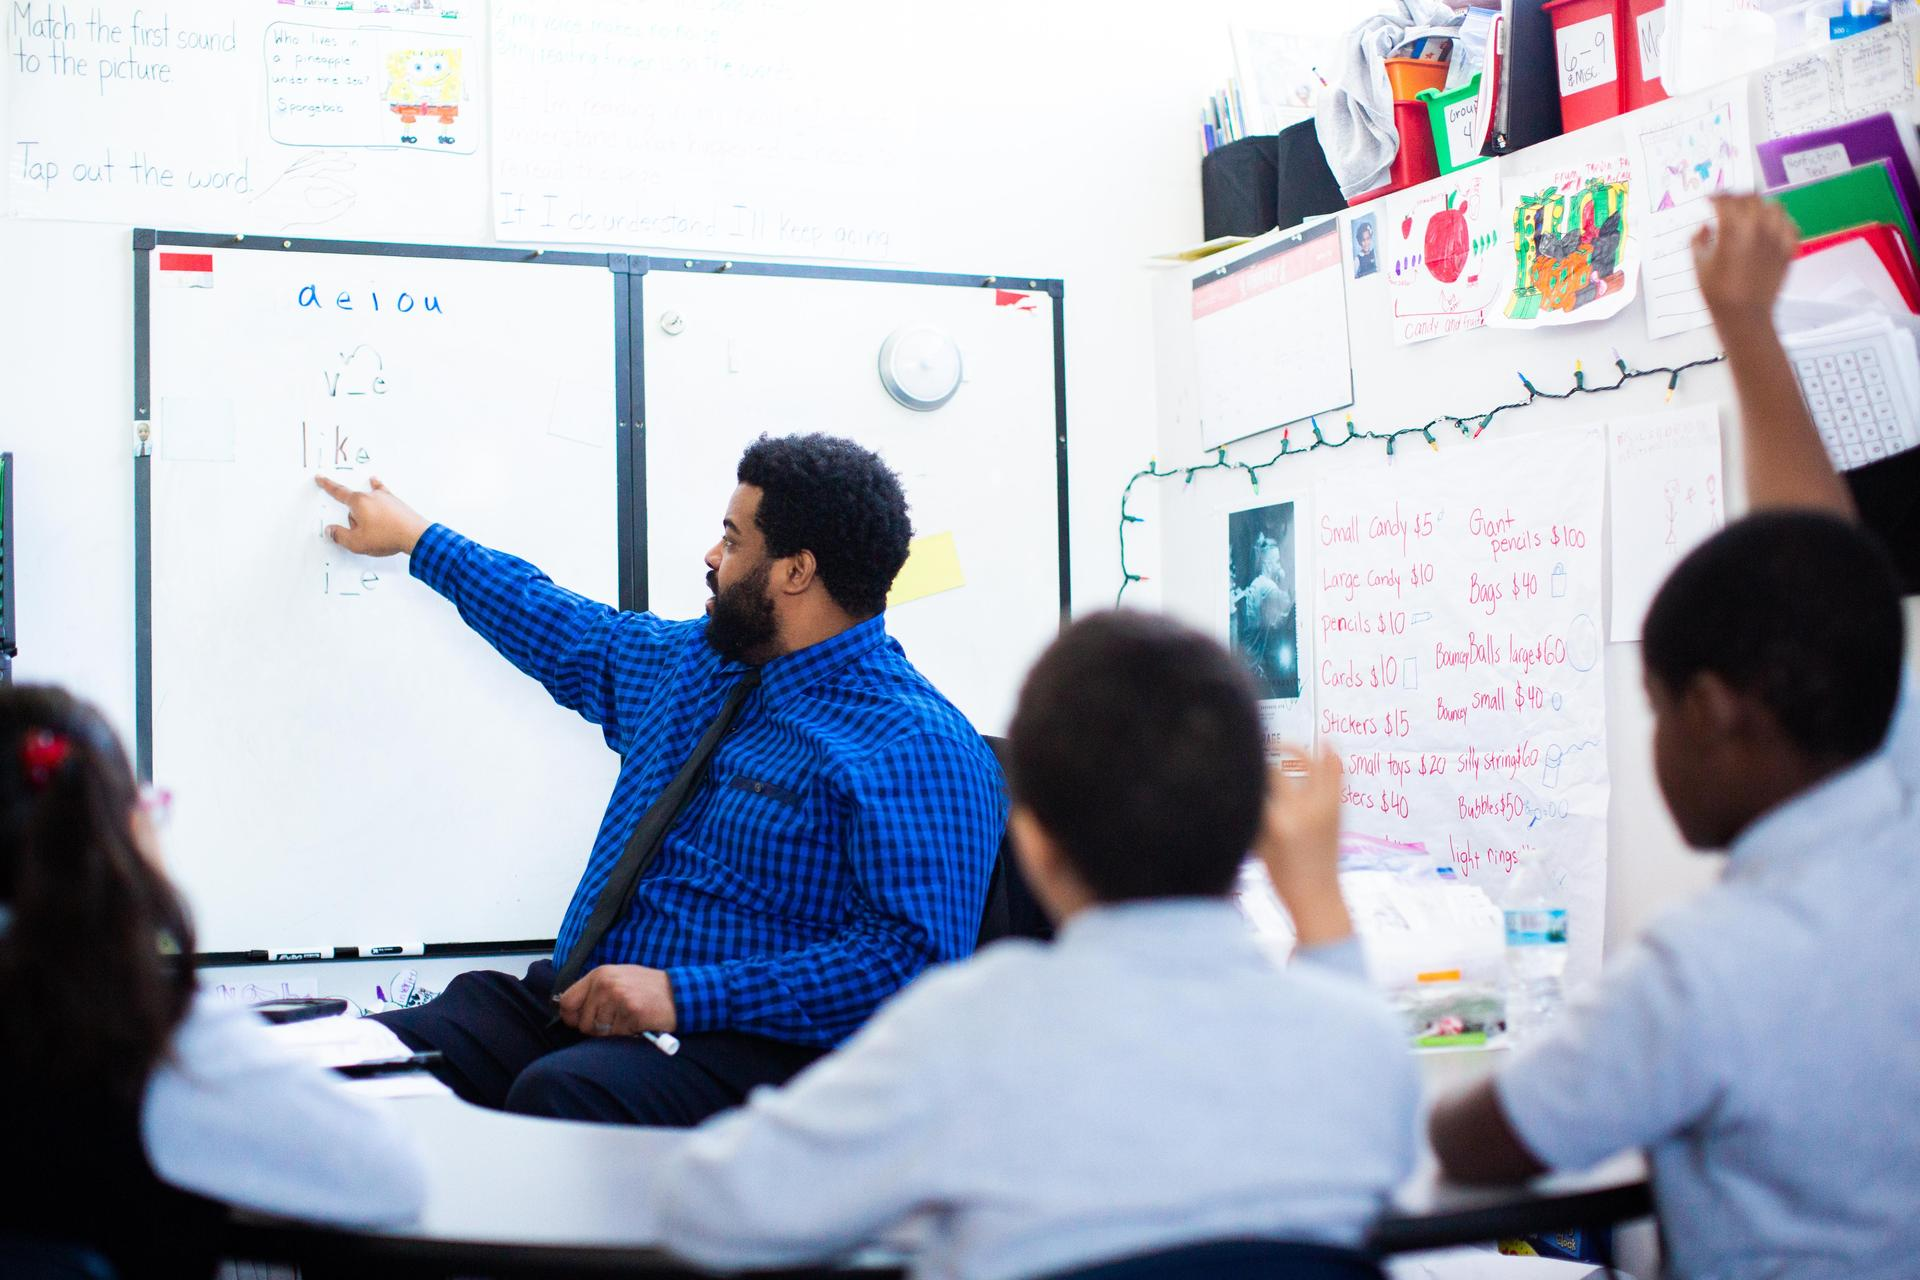 Teacher pointing to board